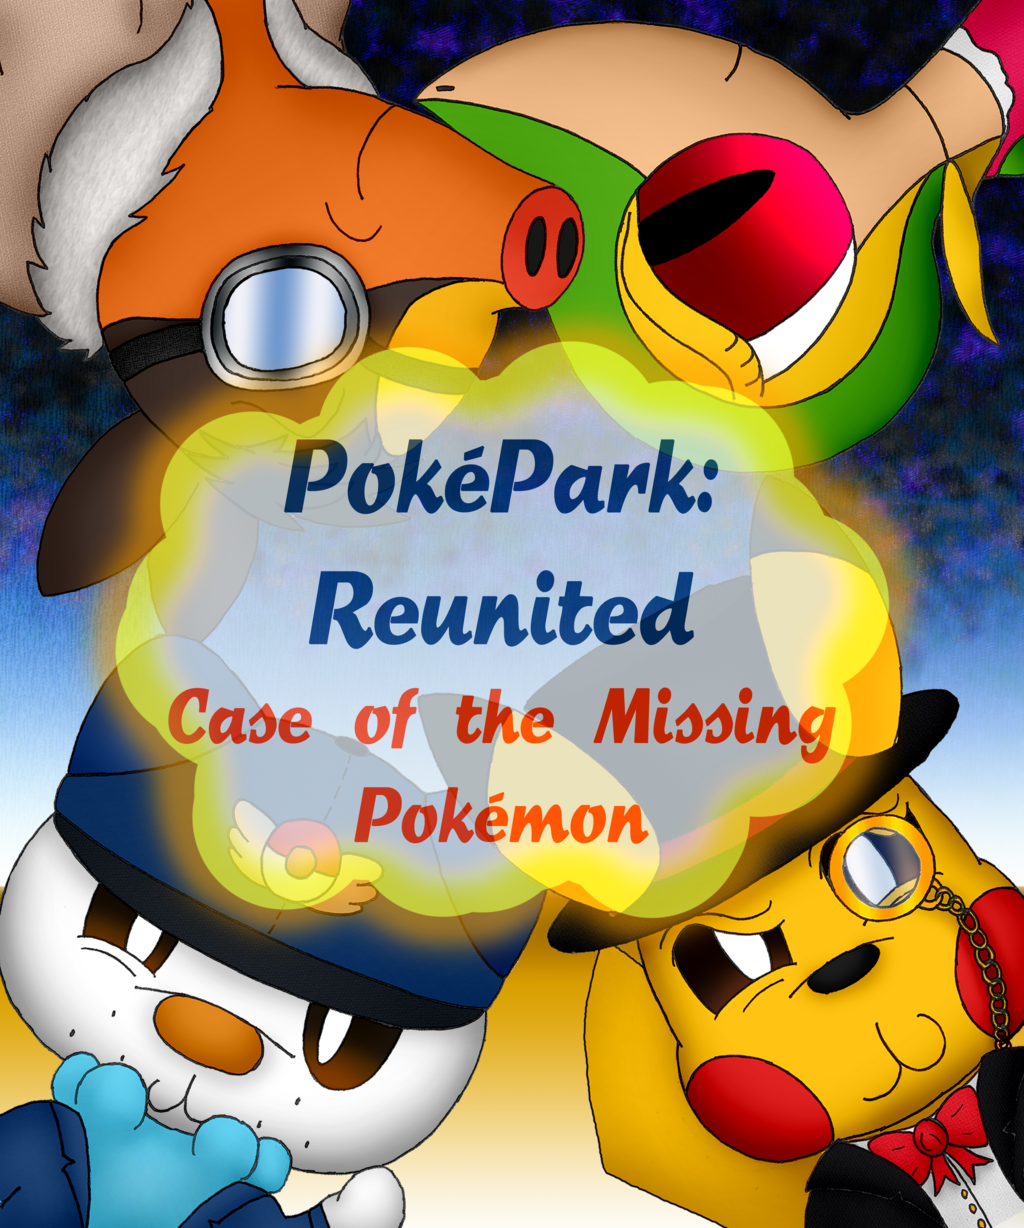 PokePark Reunited: Case of the Mission Pokémon Cover (Commission)